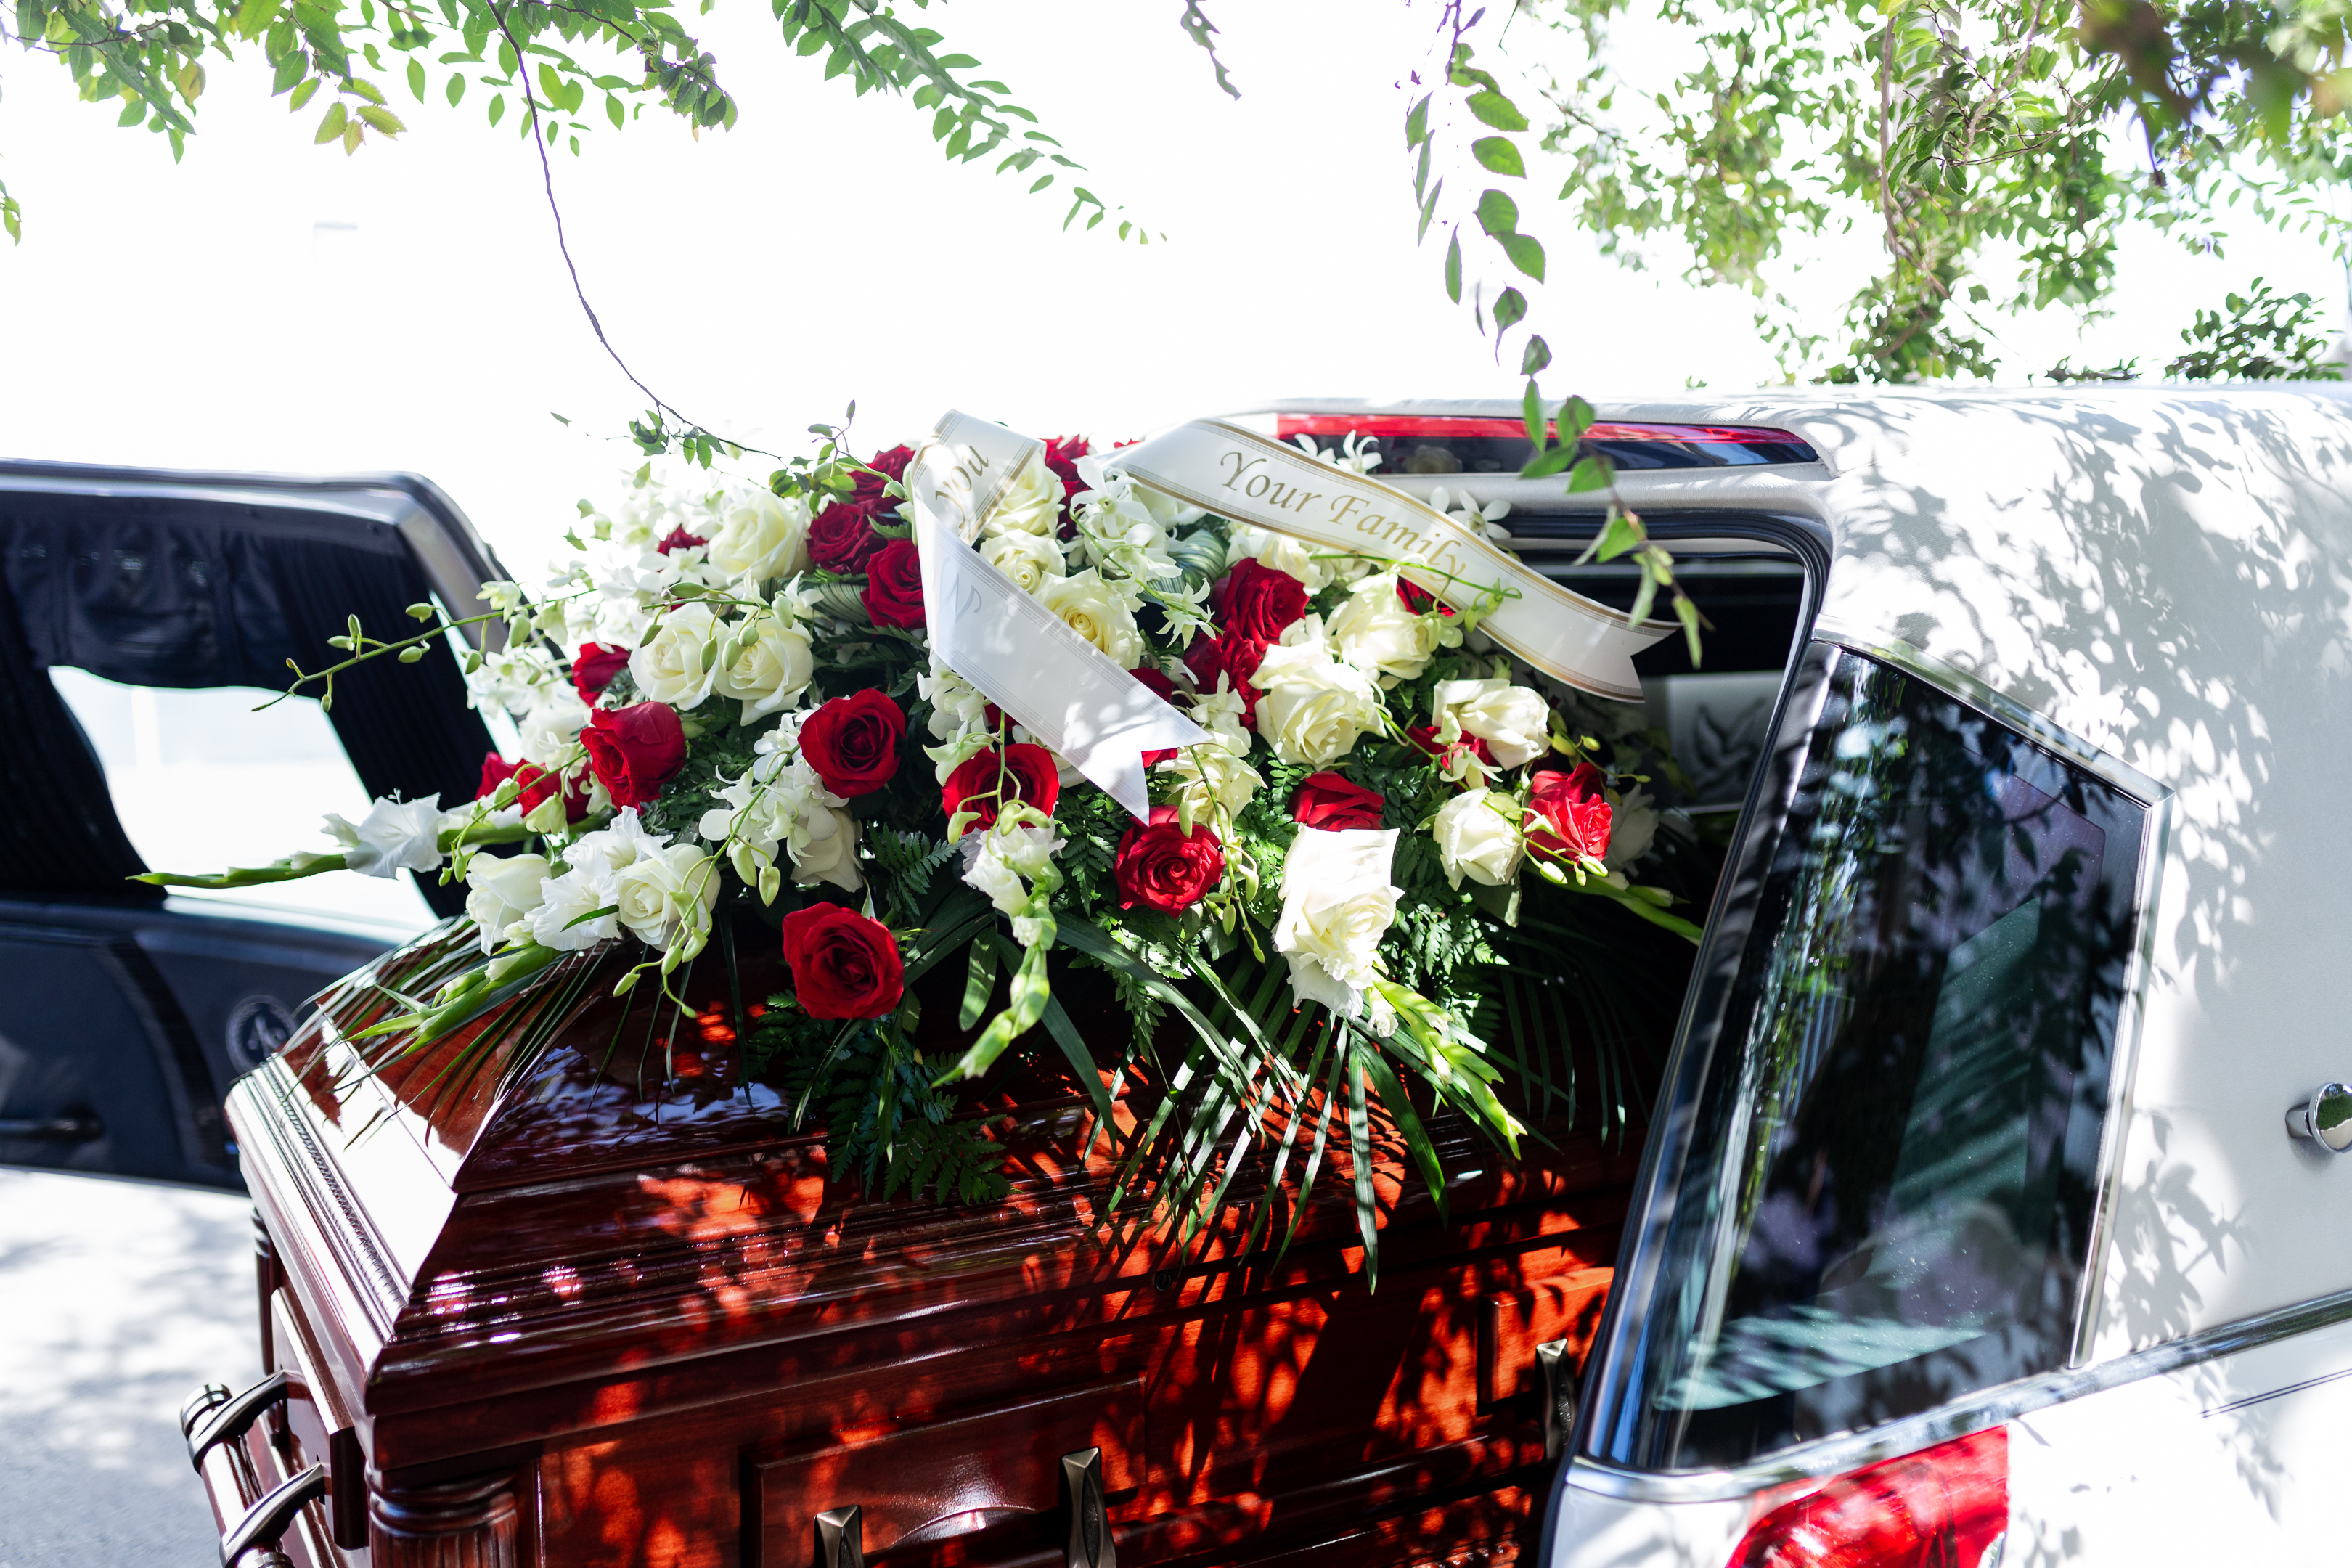 funeral details of flowers on cherry wood casket and white car